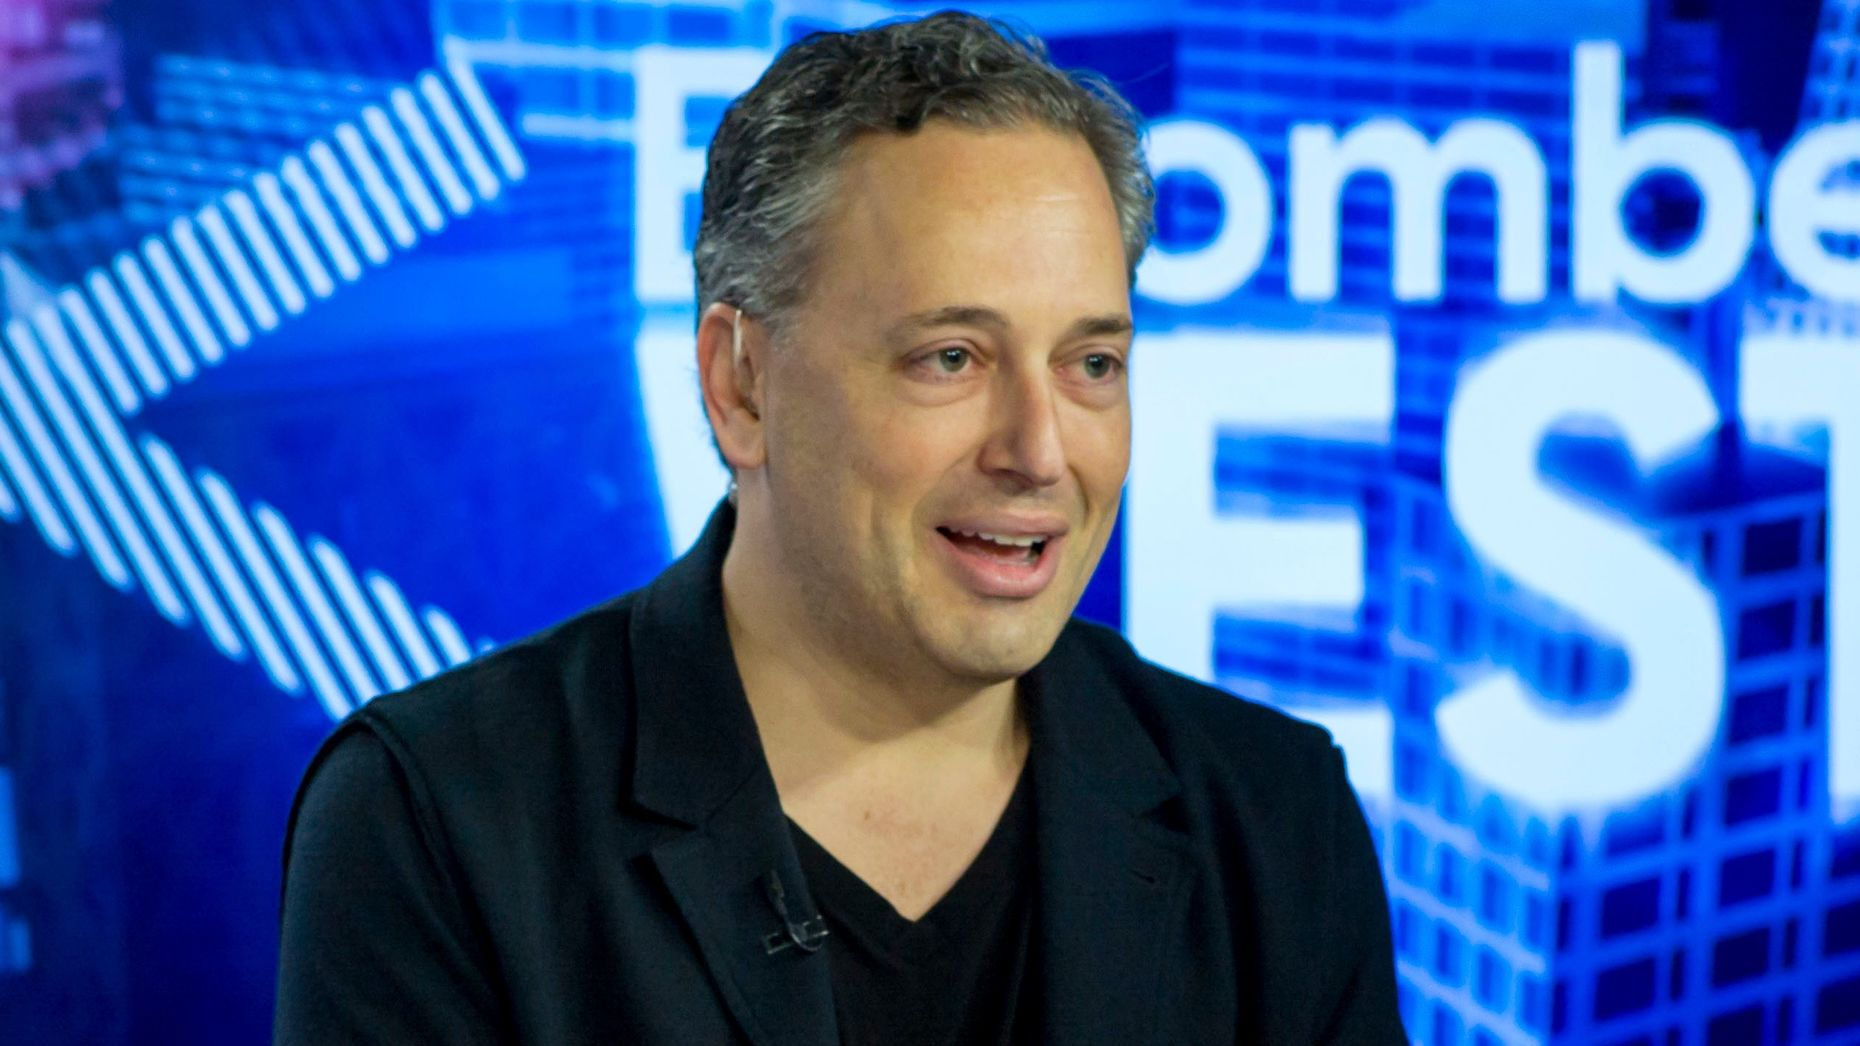 Zenefits CEO David Sacks. Photo by Bloomberg.